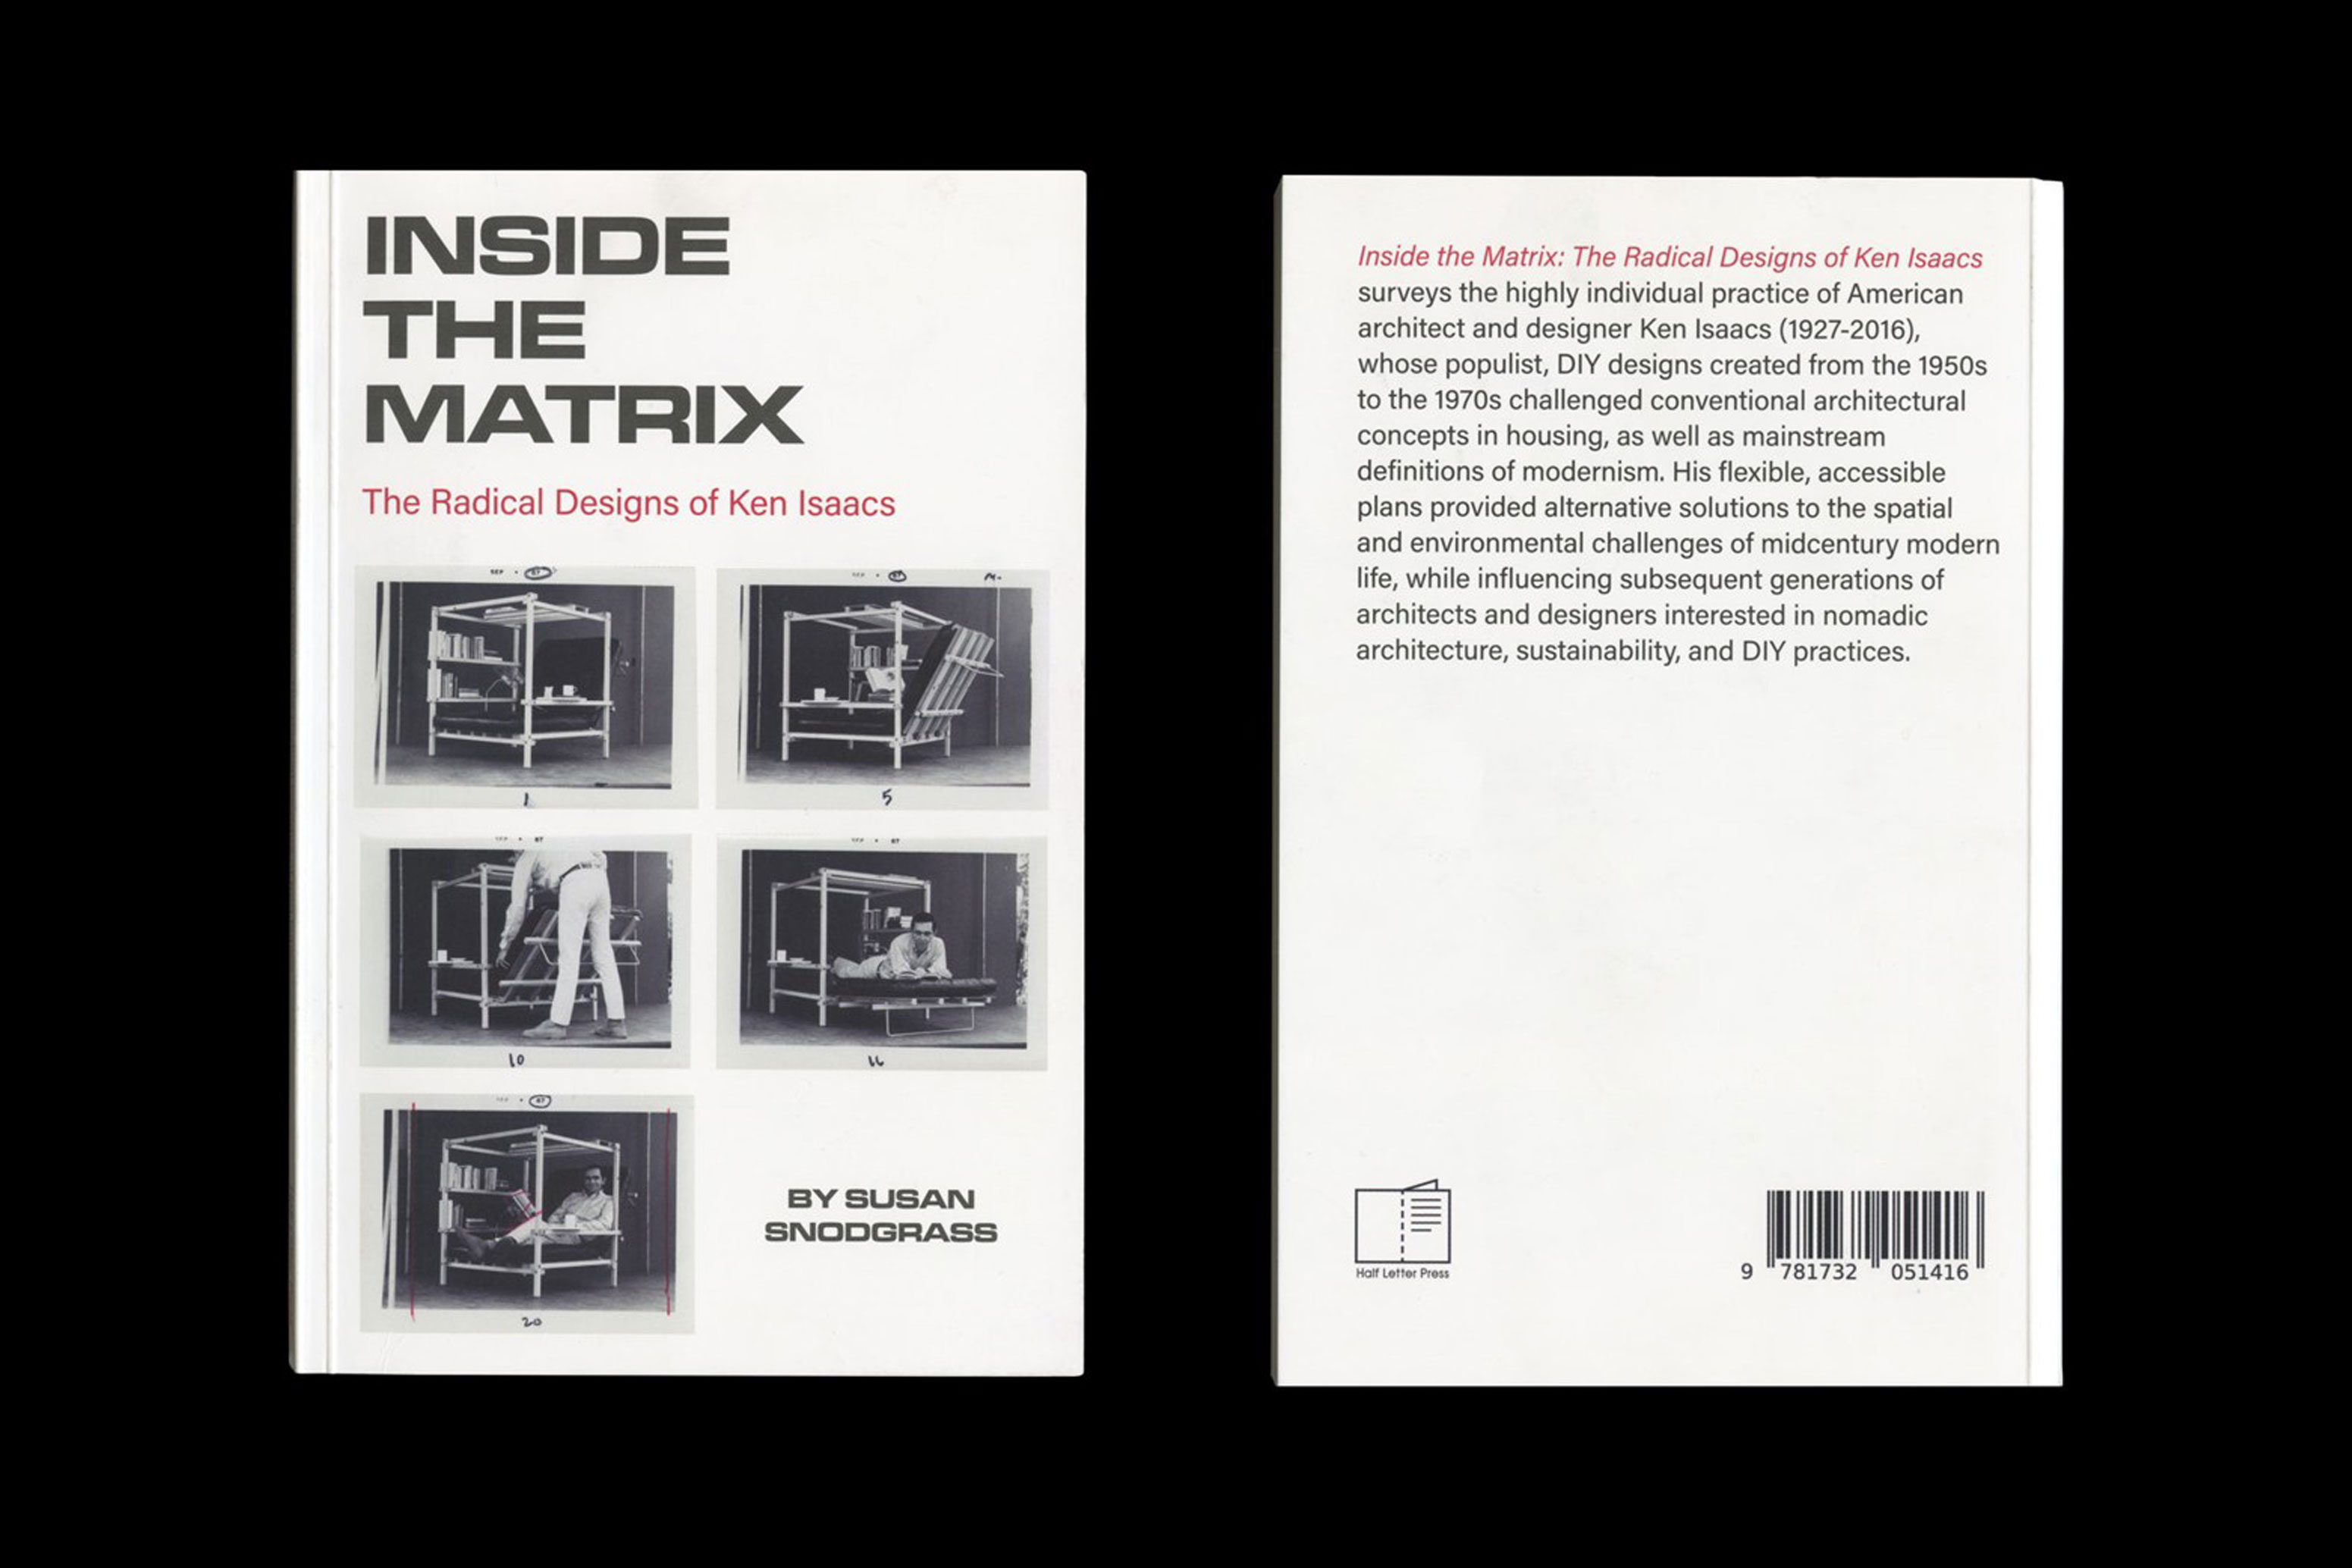 Inside the Matrix Cover